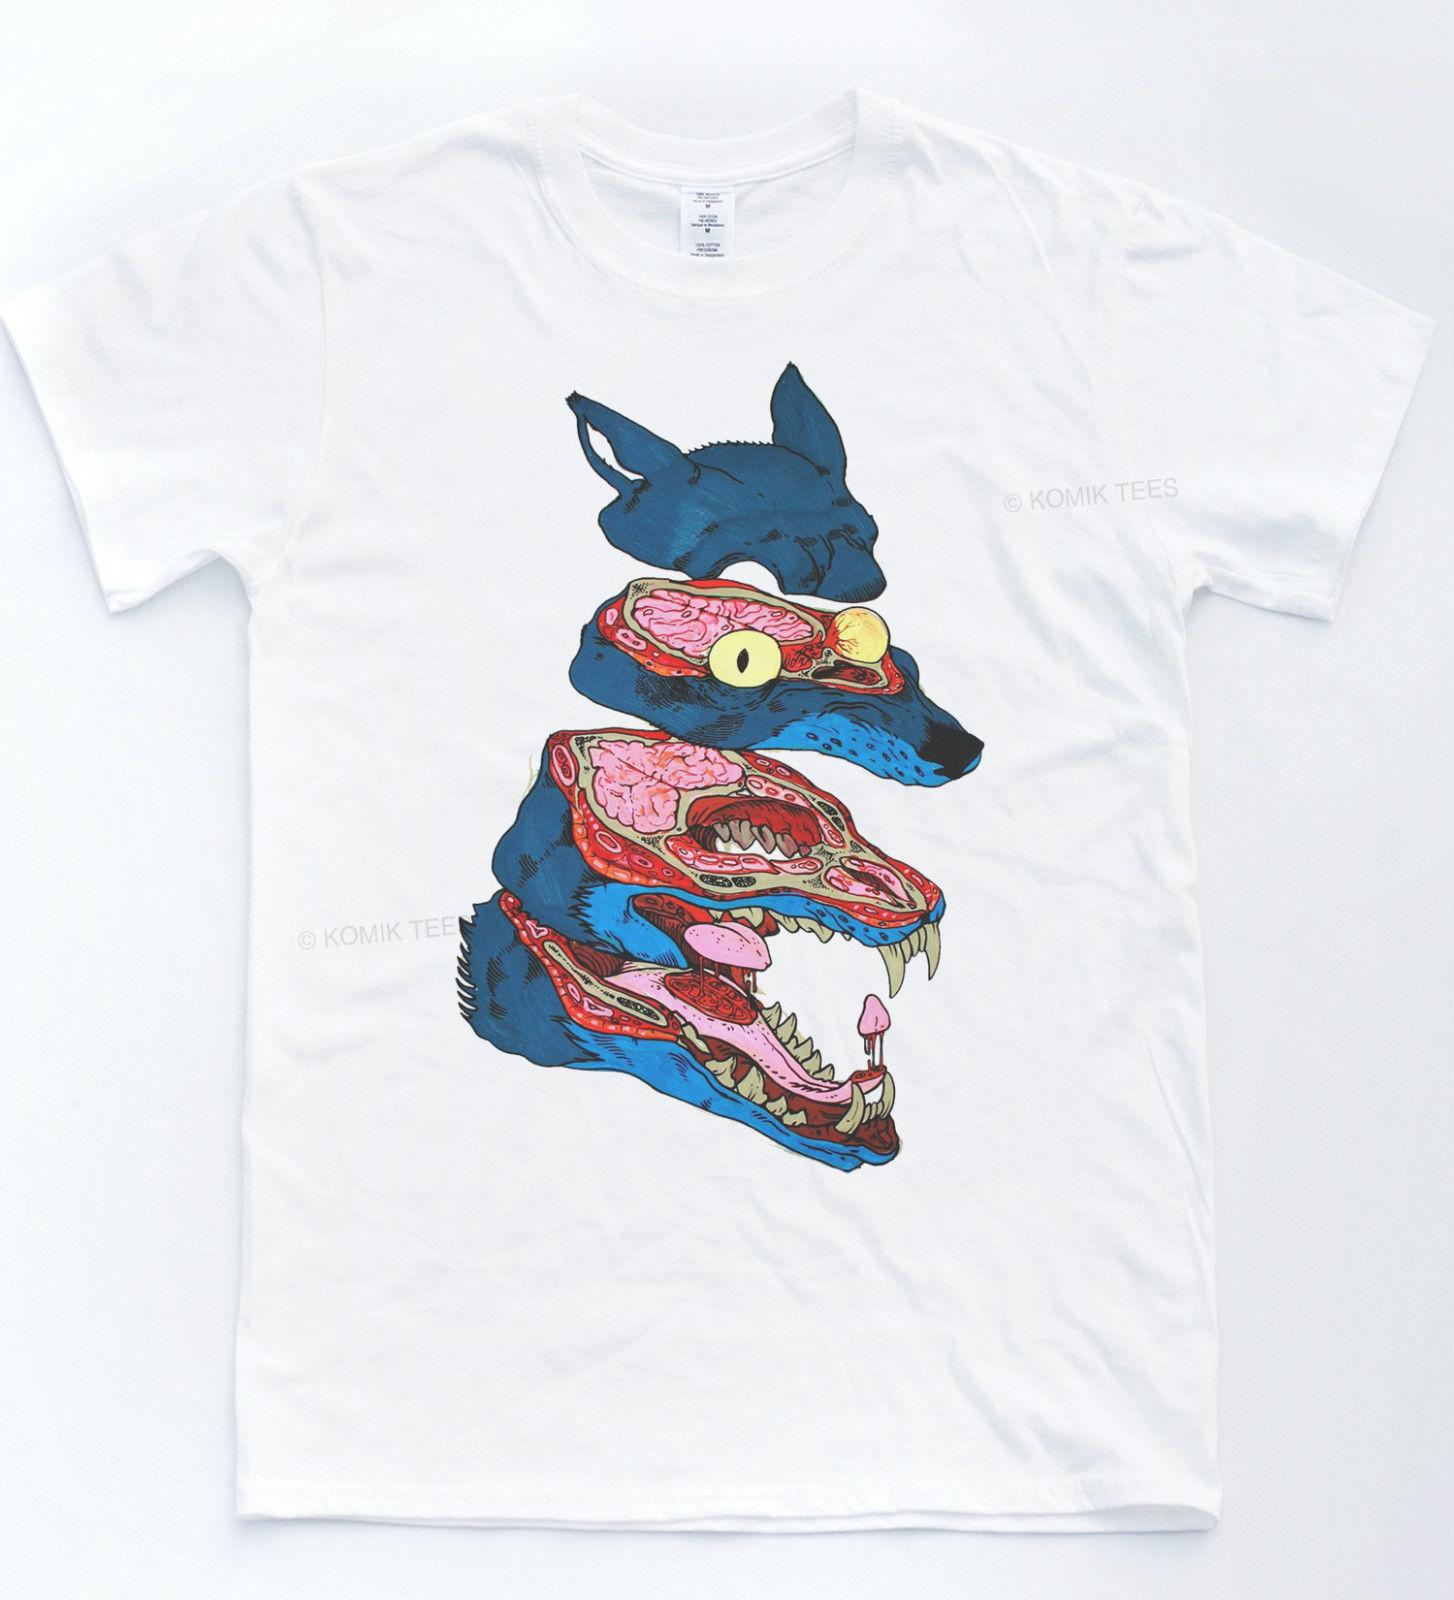 d0812f3c25d Wolf Anatomy T Shirt Illustration Cartoon Comic Tee Hipster Drawing Animal  Top Fan Pants T Shirt Purchase T Shirt Crazy Tee Shirts Online From  Qz614445917